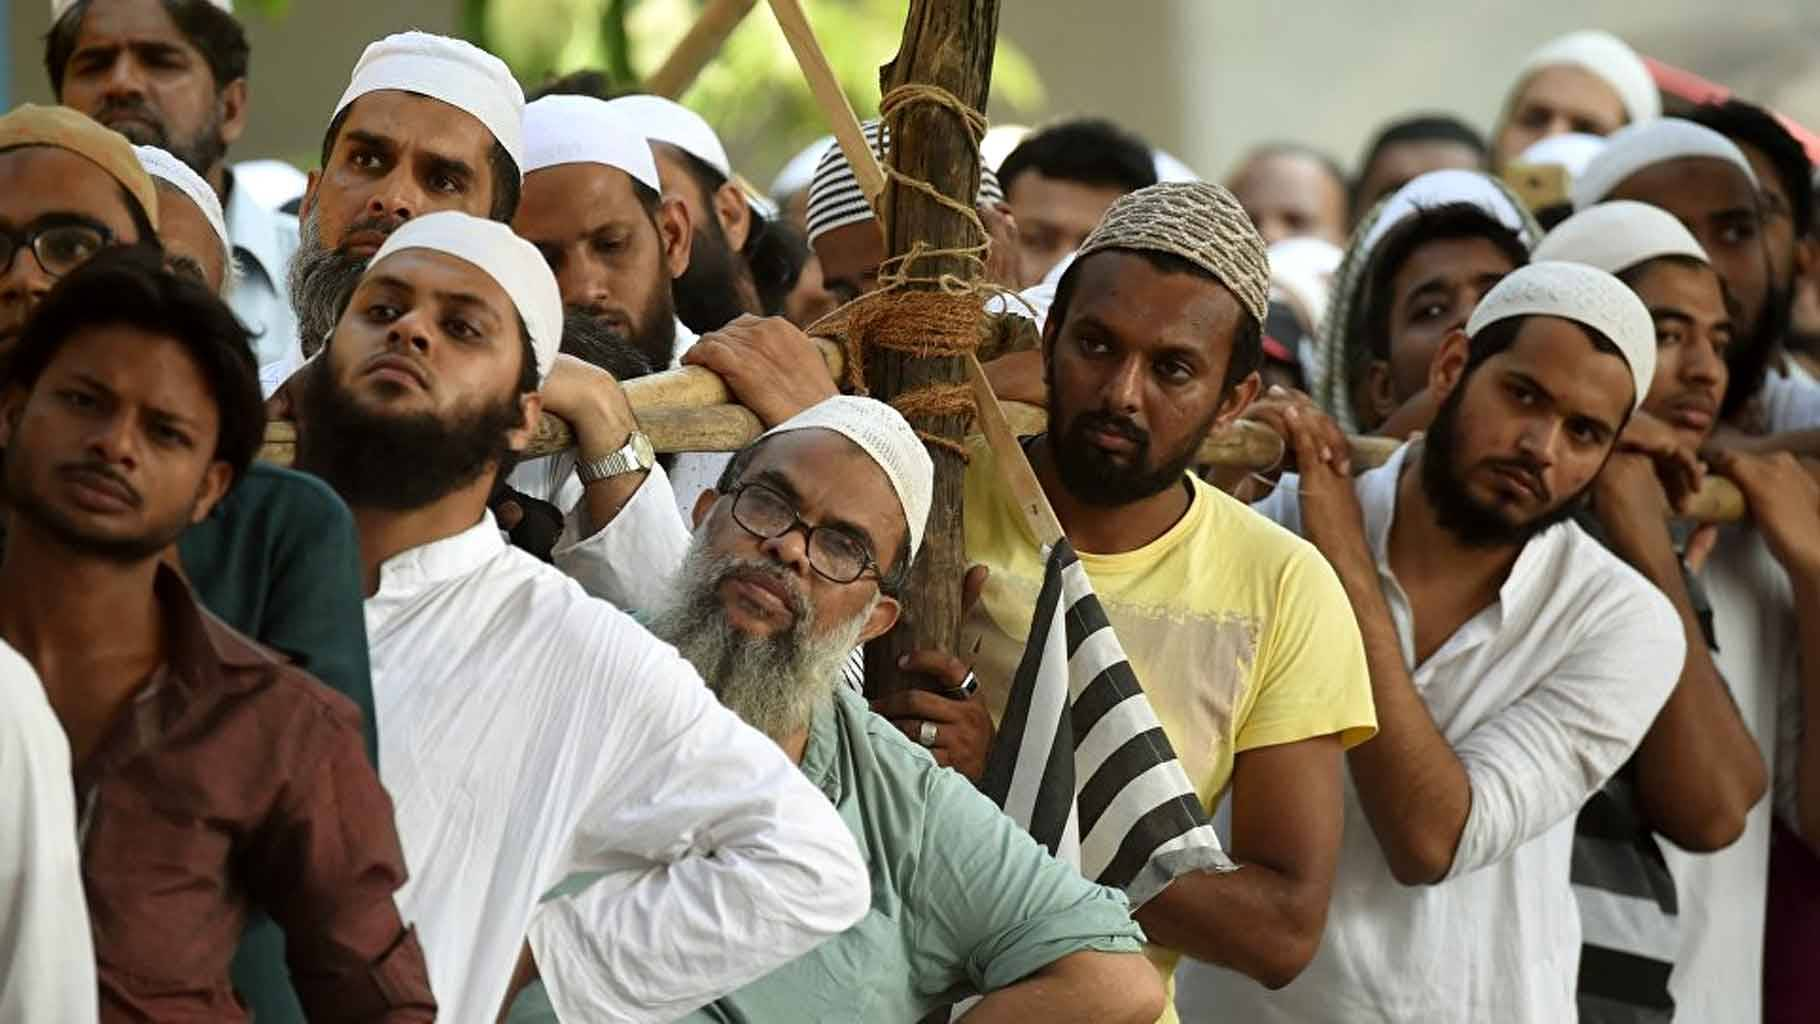 खुद का मजाक बनाता मुसलमान, उस पर एतराज जताता मुसलमान - Indian Muslims are responsible for their own social political backwardness